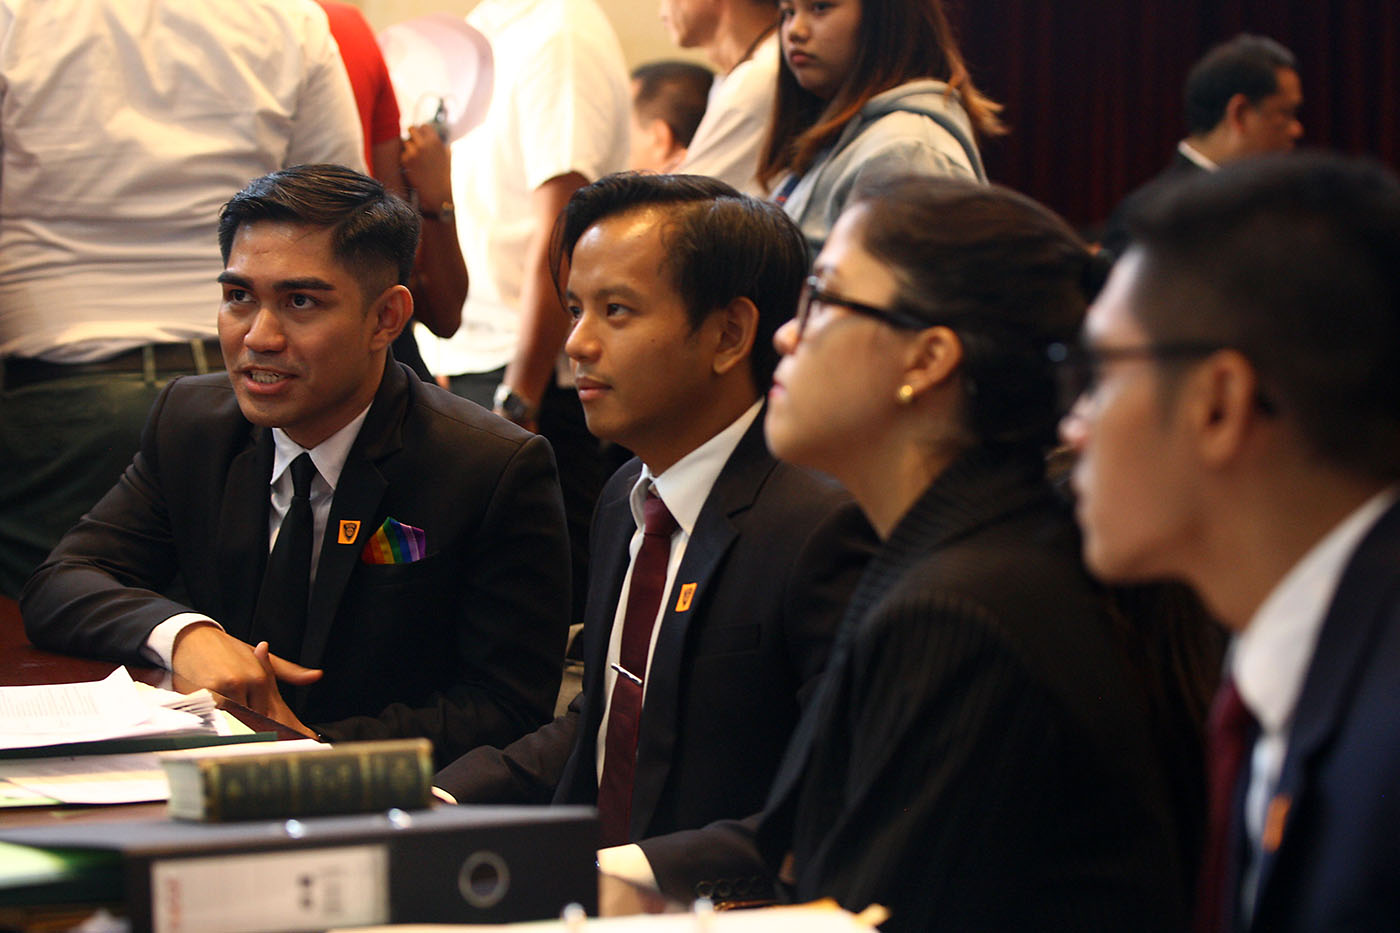 GROUNDBREAKING. The team of lawyers led by Jesus Falcis faces the Supreme Court. Photo by Ben Nabong/Rappler